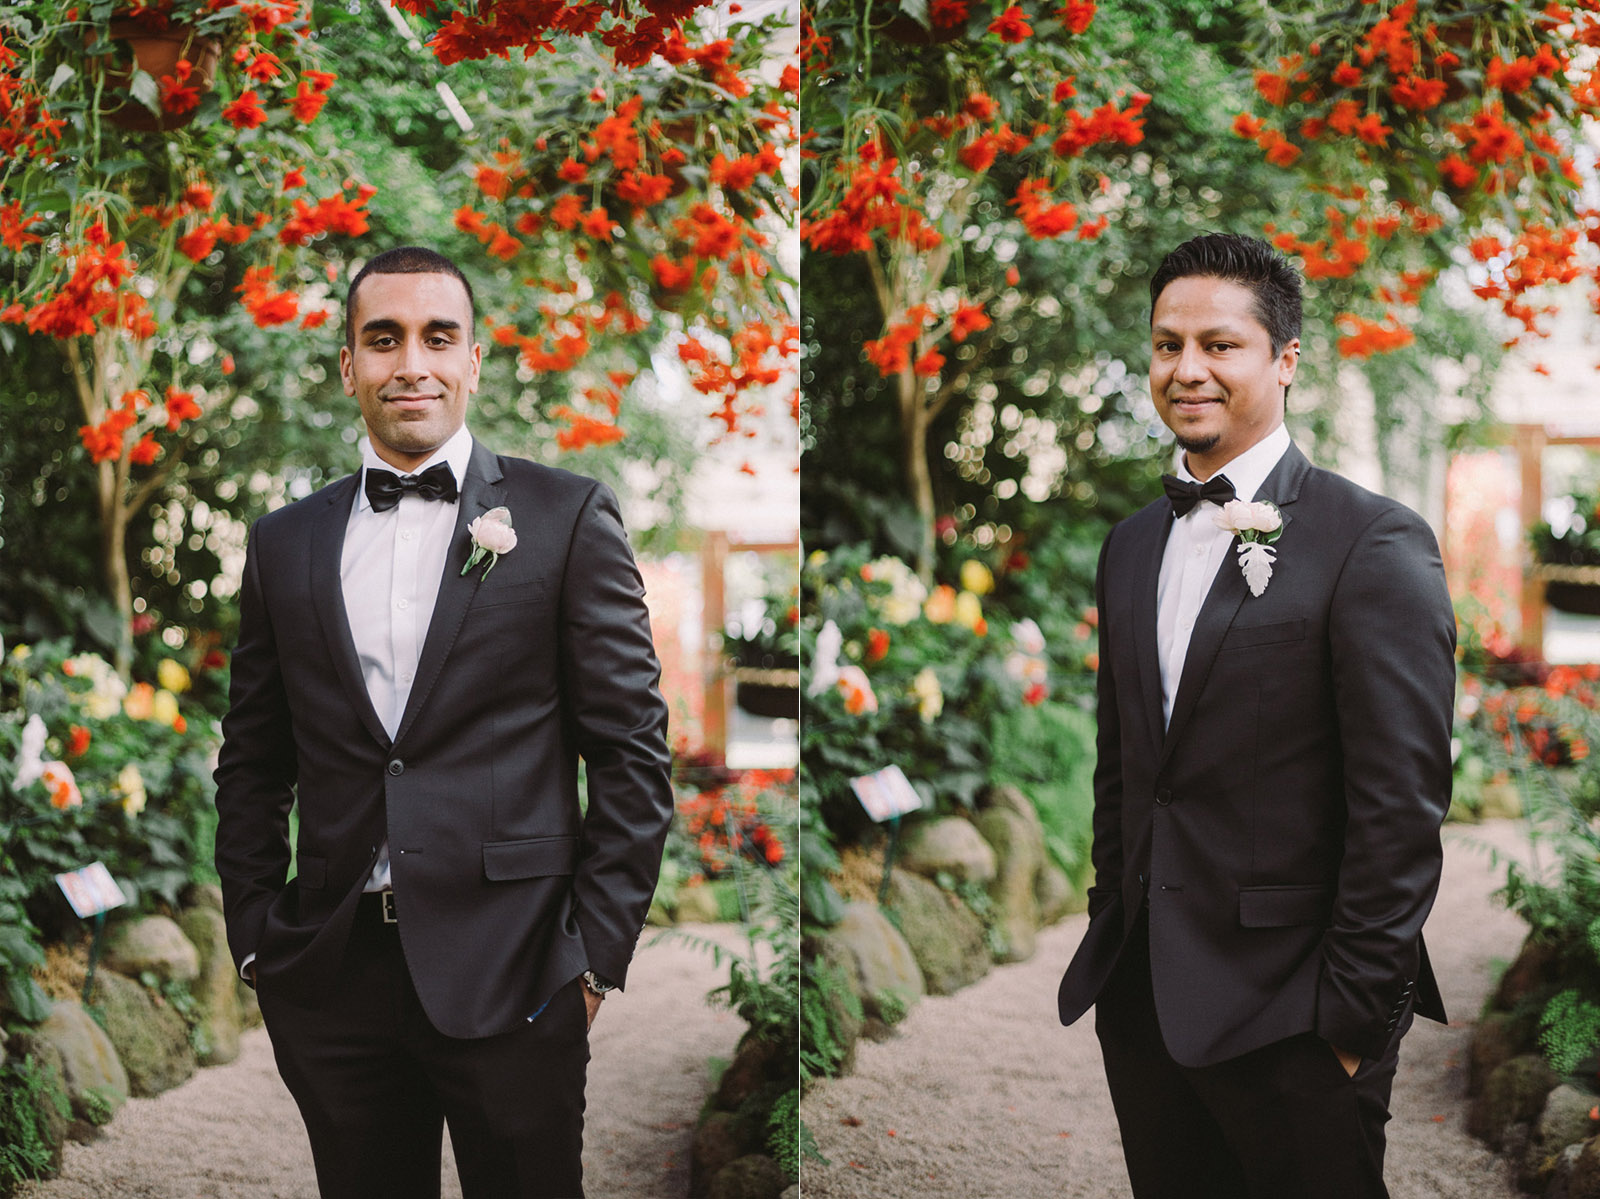 Melbourne Wedding PJ-Dean Raphael-110.jpg